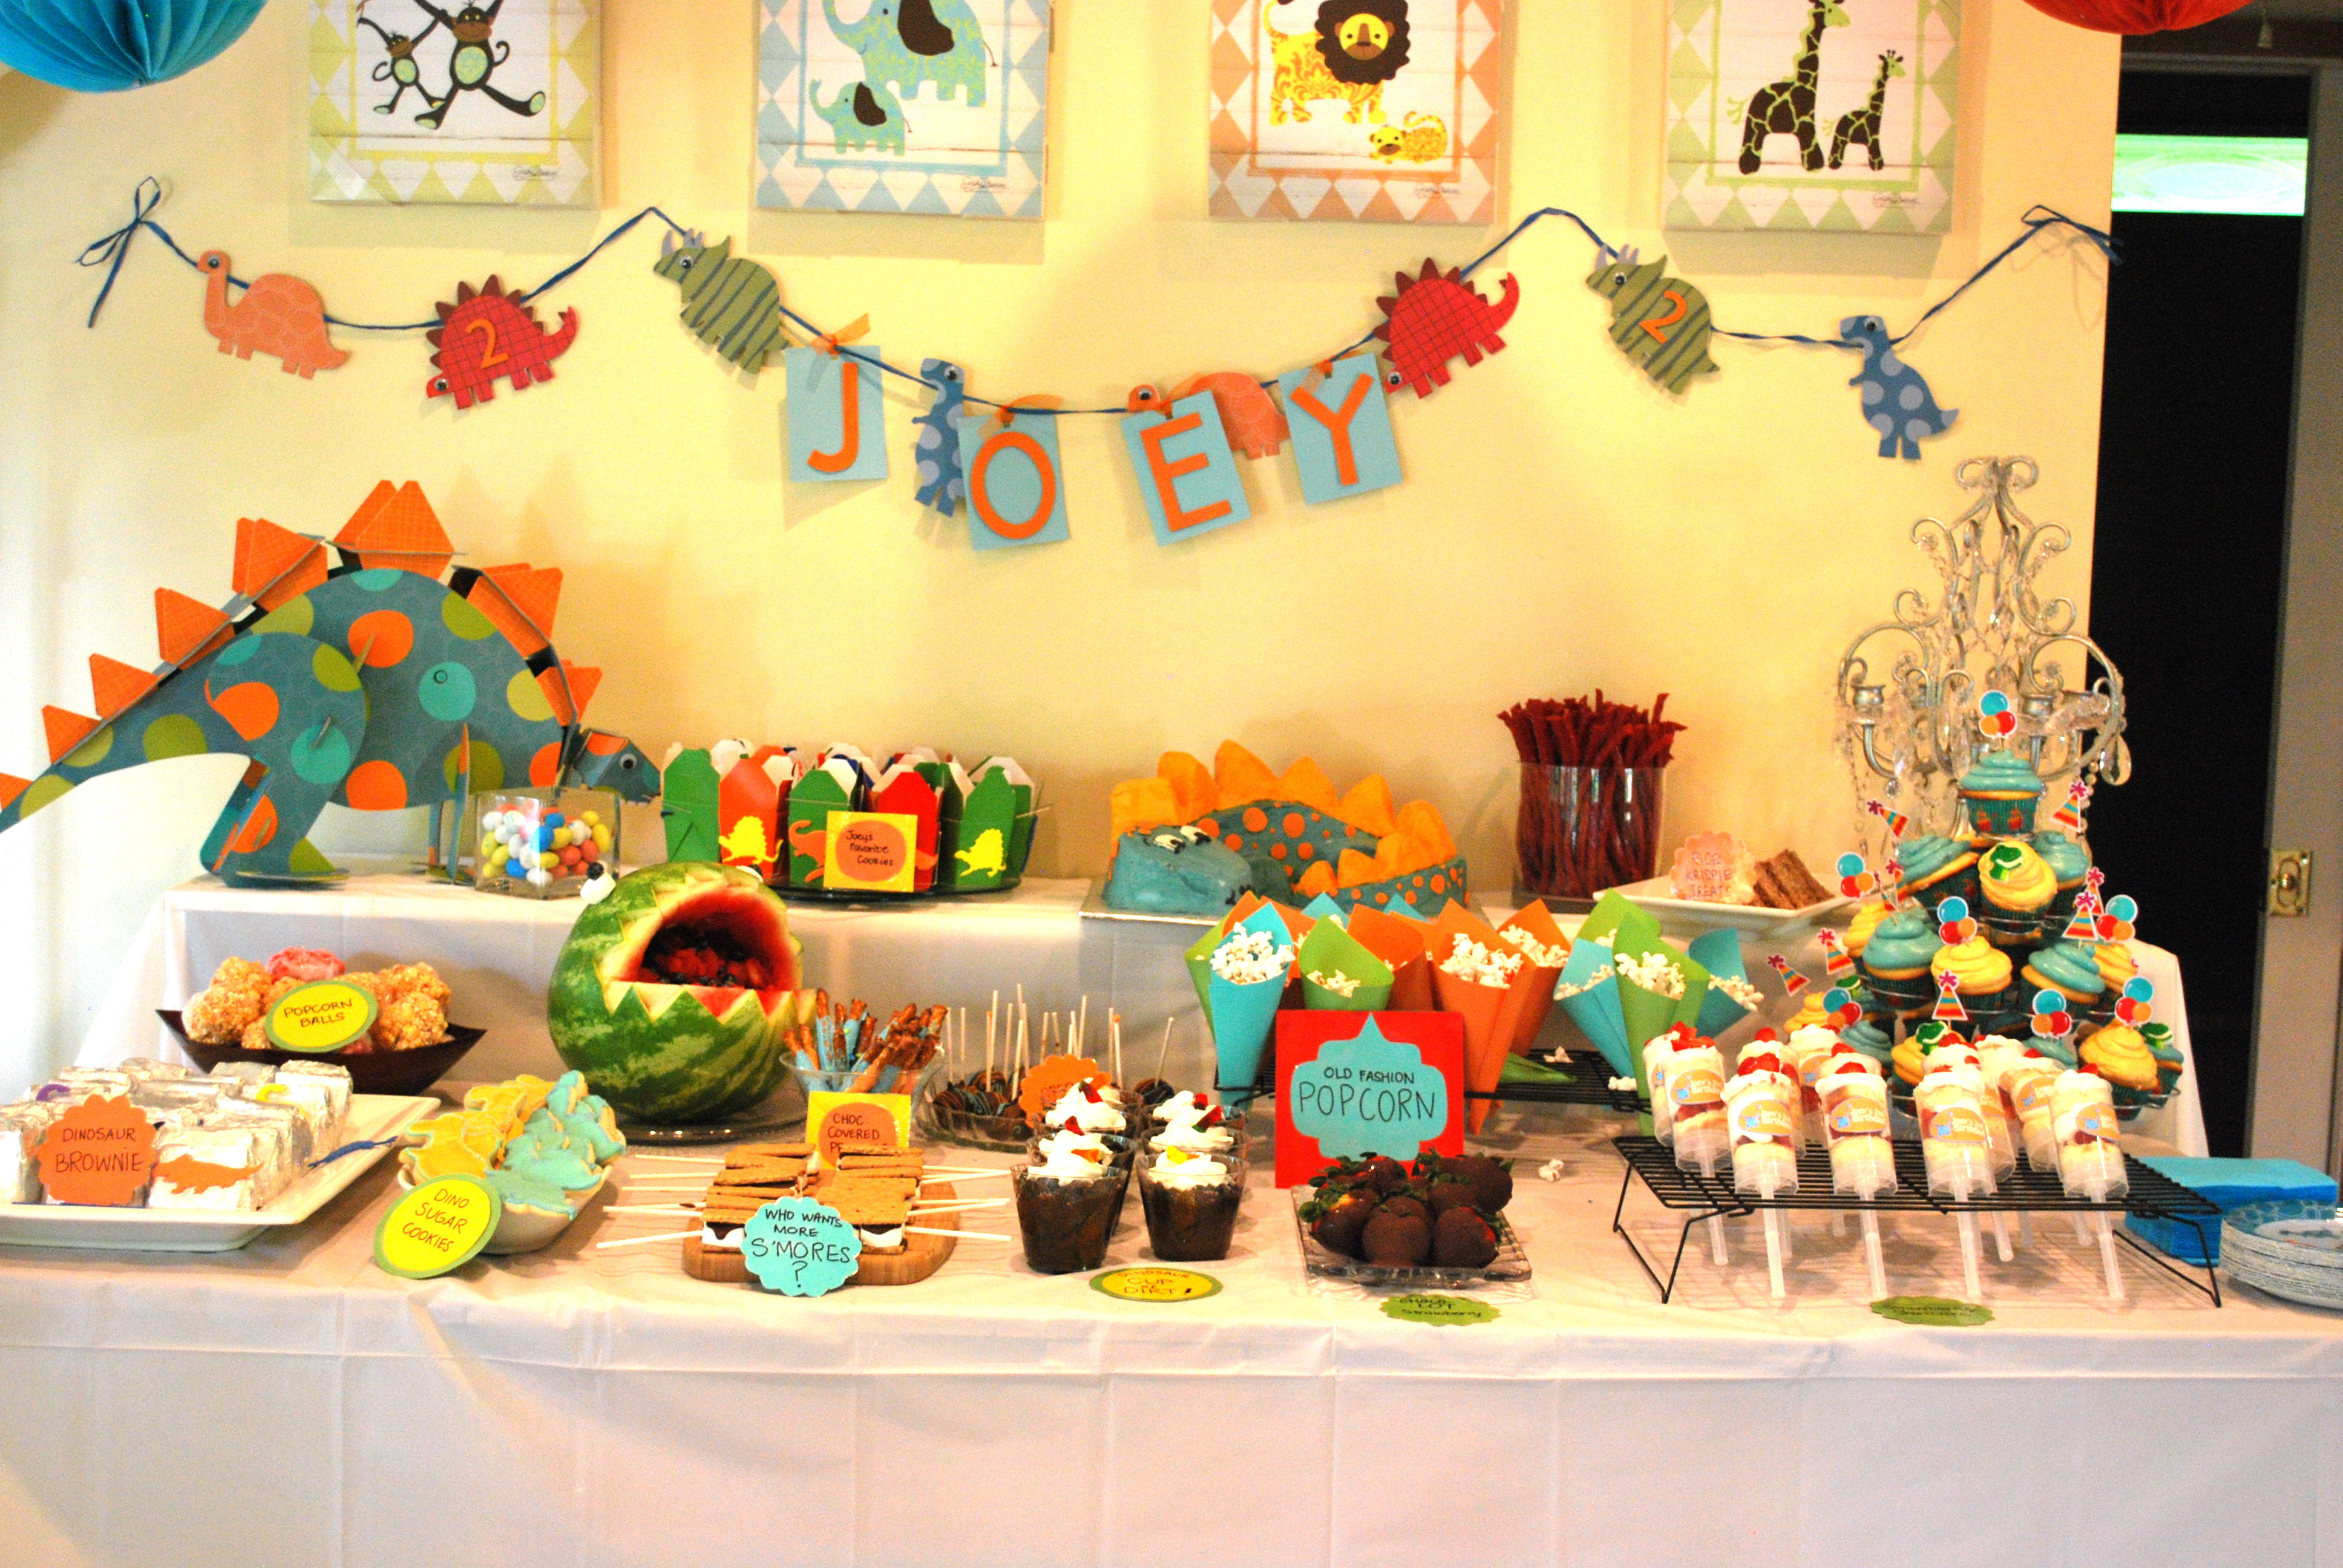 Best ideas about Dinosaur Birthday Party Decorations . Save or Pin Dinosaur Themed Birthday Party Now.